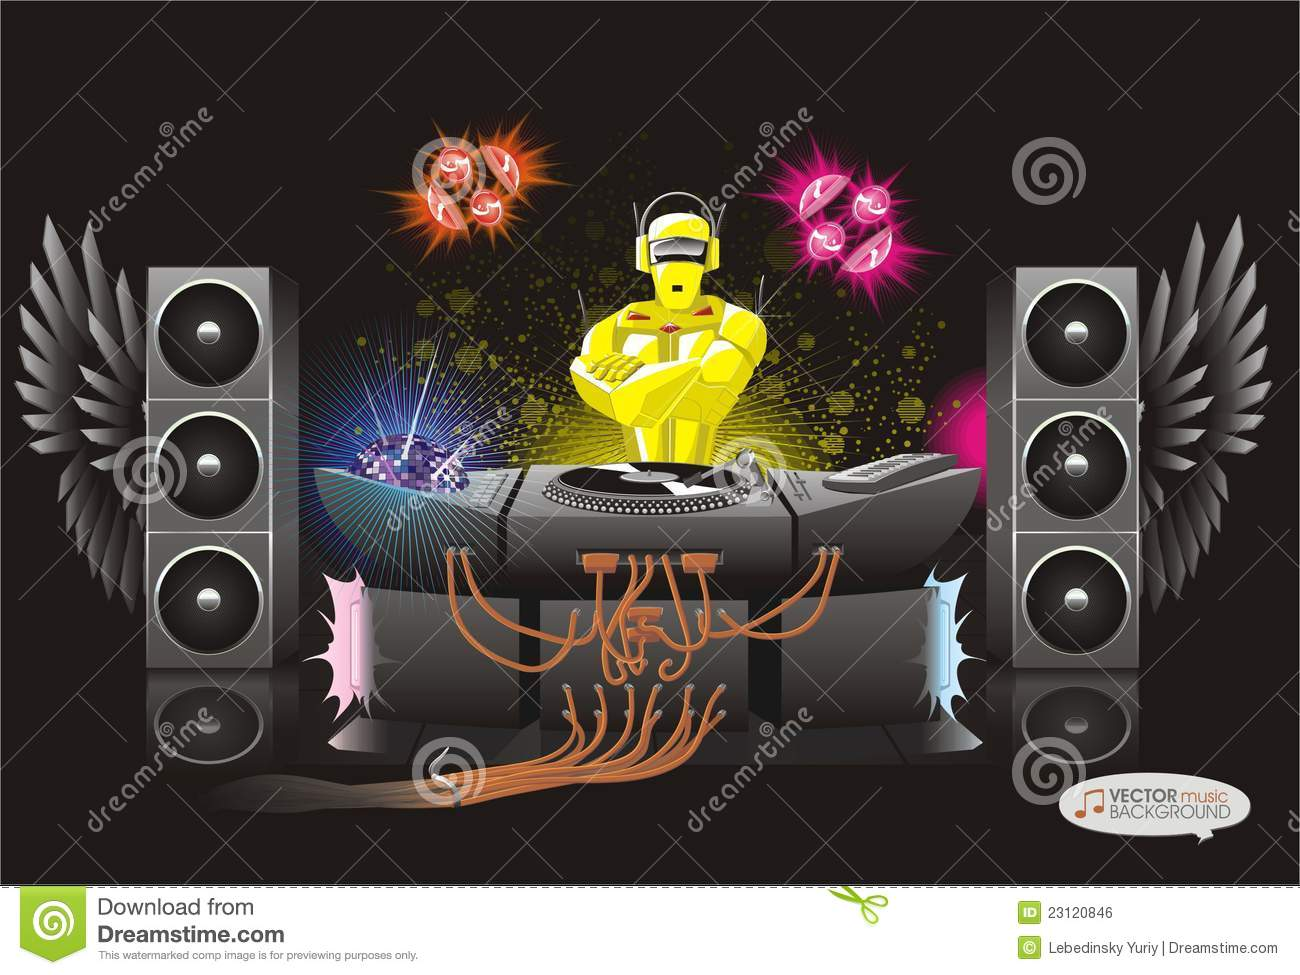 Royalty Free Stock Photo Download Abstract Music Background Dj